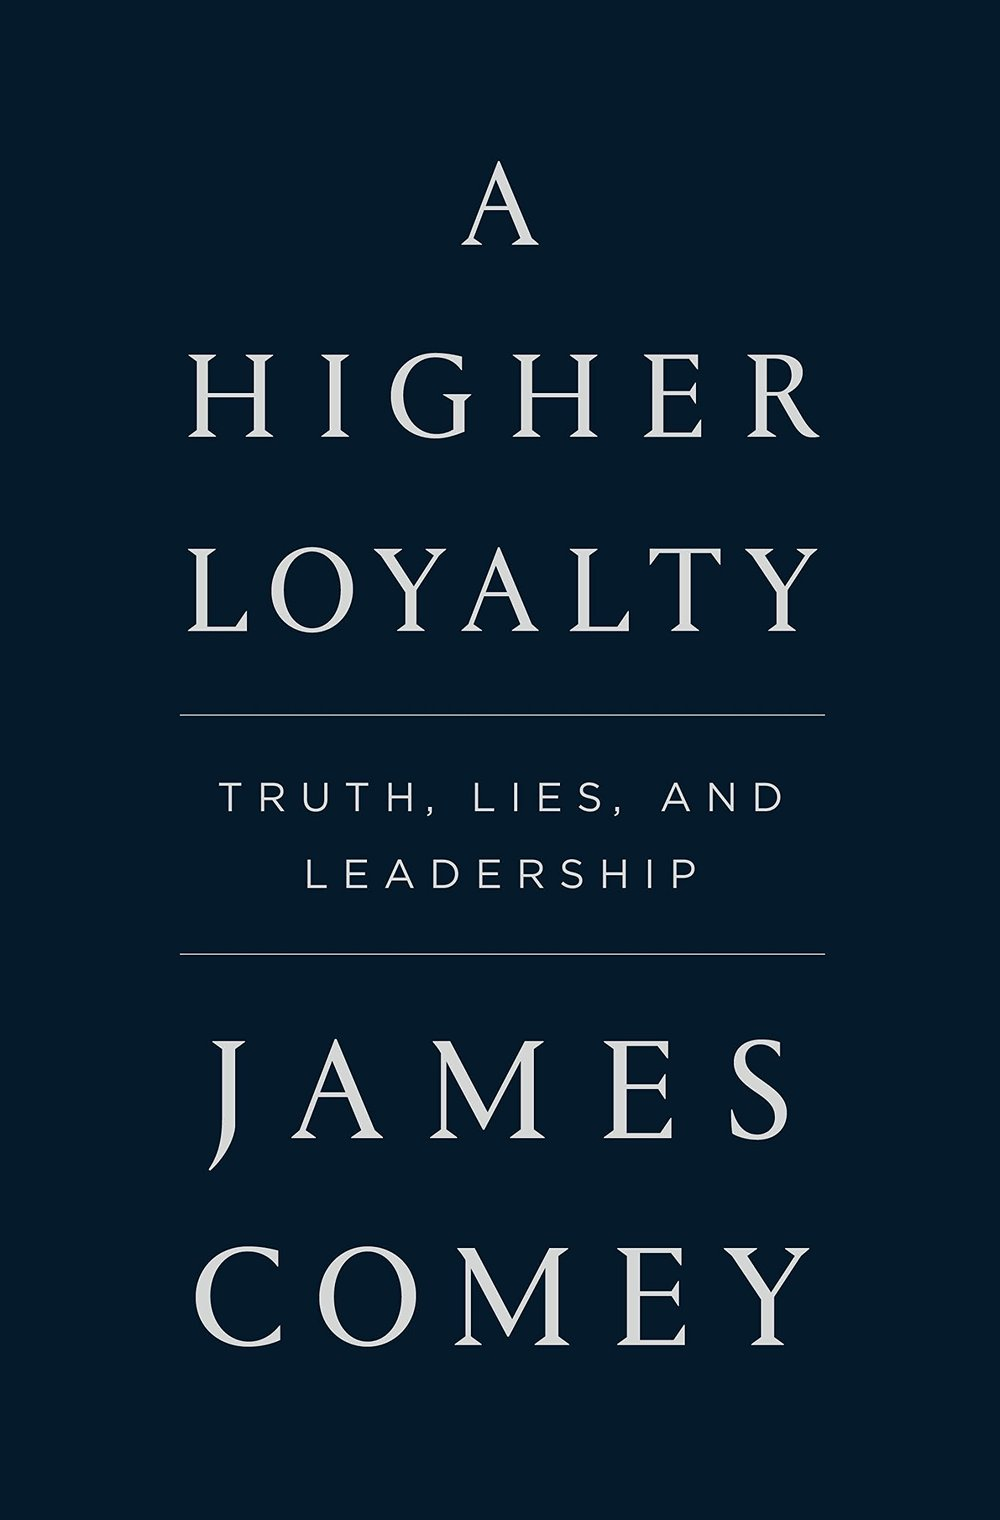 A Higher Loyalty: Truth, Lies and LeadershipBy James Comey - This book is a fascinating account of leadership at the heart of the FBI.Former FBI director James Comey shares his never-before-told experiences from some of the highest-stakes situations of his career in the past two decades of American government, exploring what good, ethical leadership looks like, and the impact of not making sound decisions. His journey provides an unimagineable entry into the corridors of power, and a remarkable lesson in what makes an effective leader.From prosecuting the Mafia and Martha Stewart to helping change the Bush administration's policies on torture and electronic surveillance, overseeing the Hillary Clinton e-mail investigation as well as ties between the Trump campaign and Russia, Comey has been involved in some of the most consequential cases and policies of recent history.Order this now on Amazon by clicking here